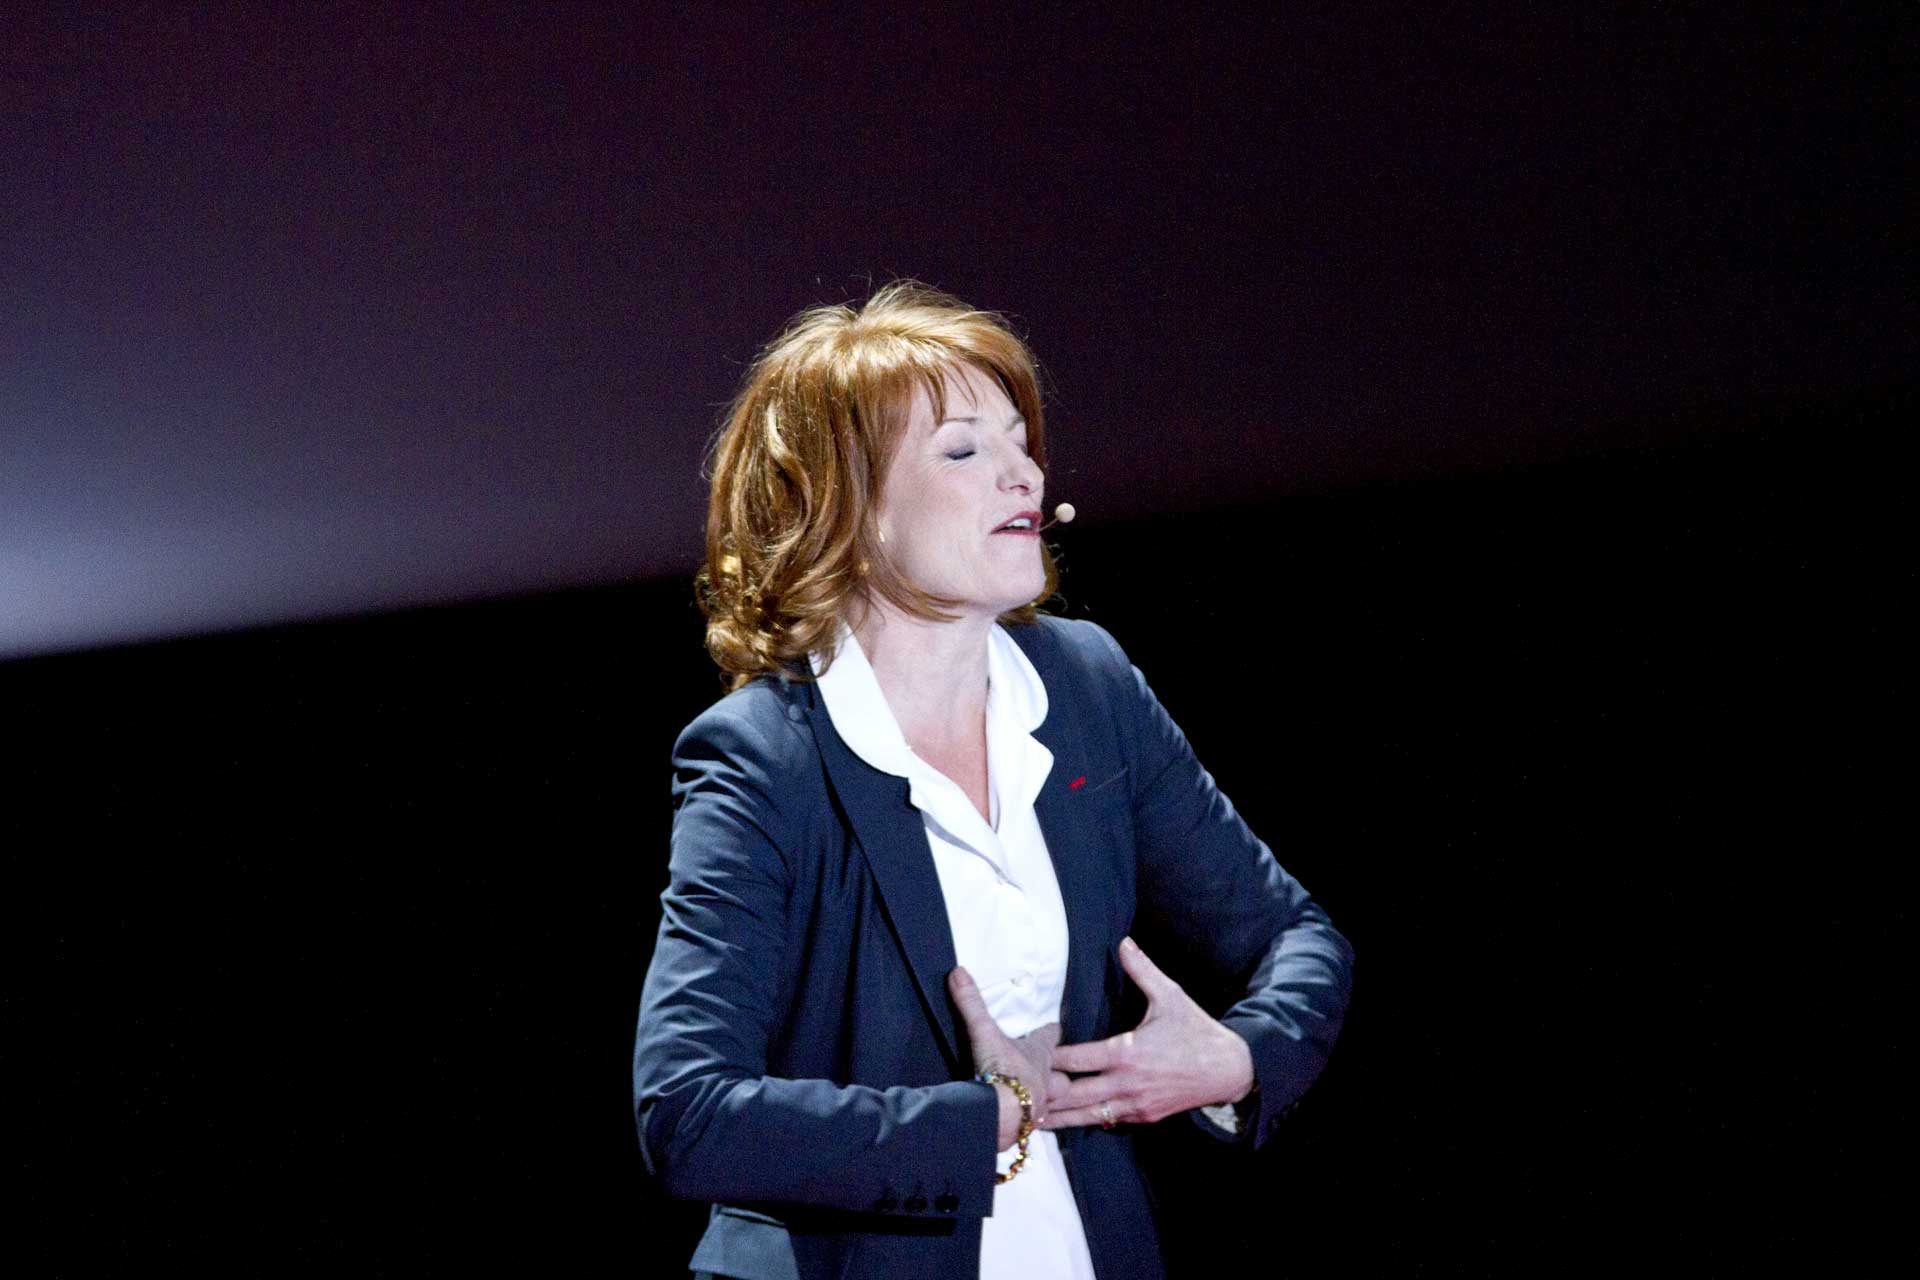 conference-TEDxParis-2013-15.jpg